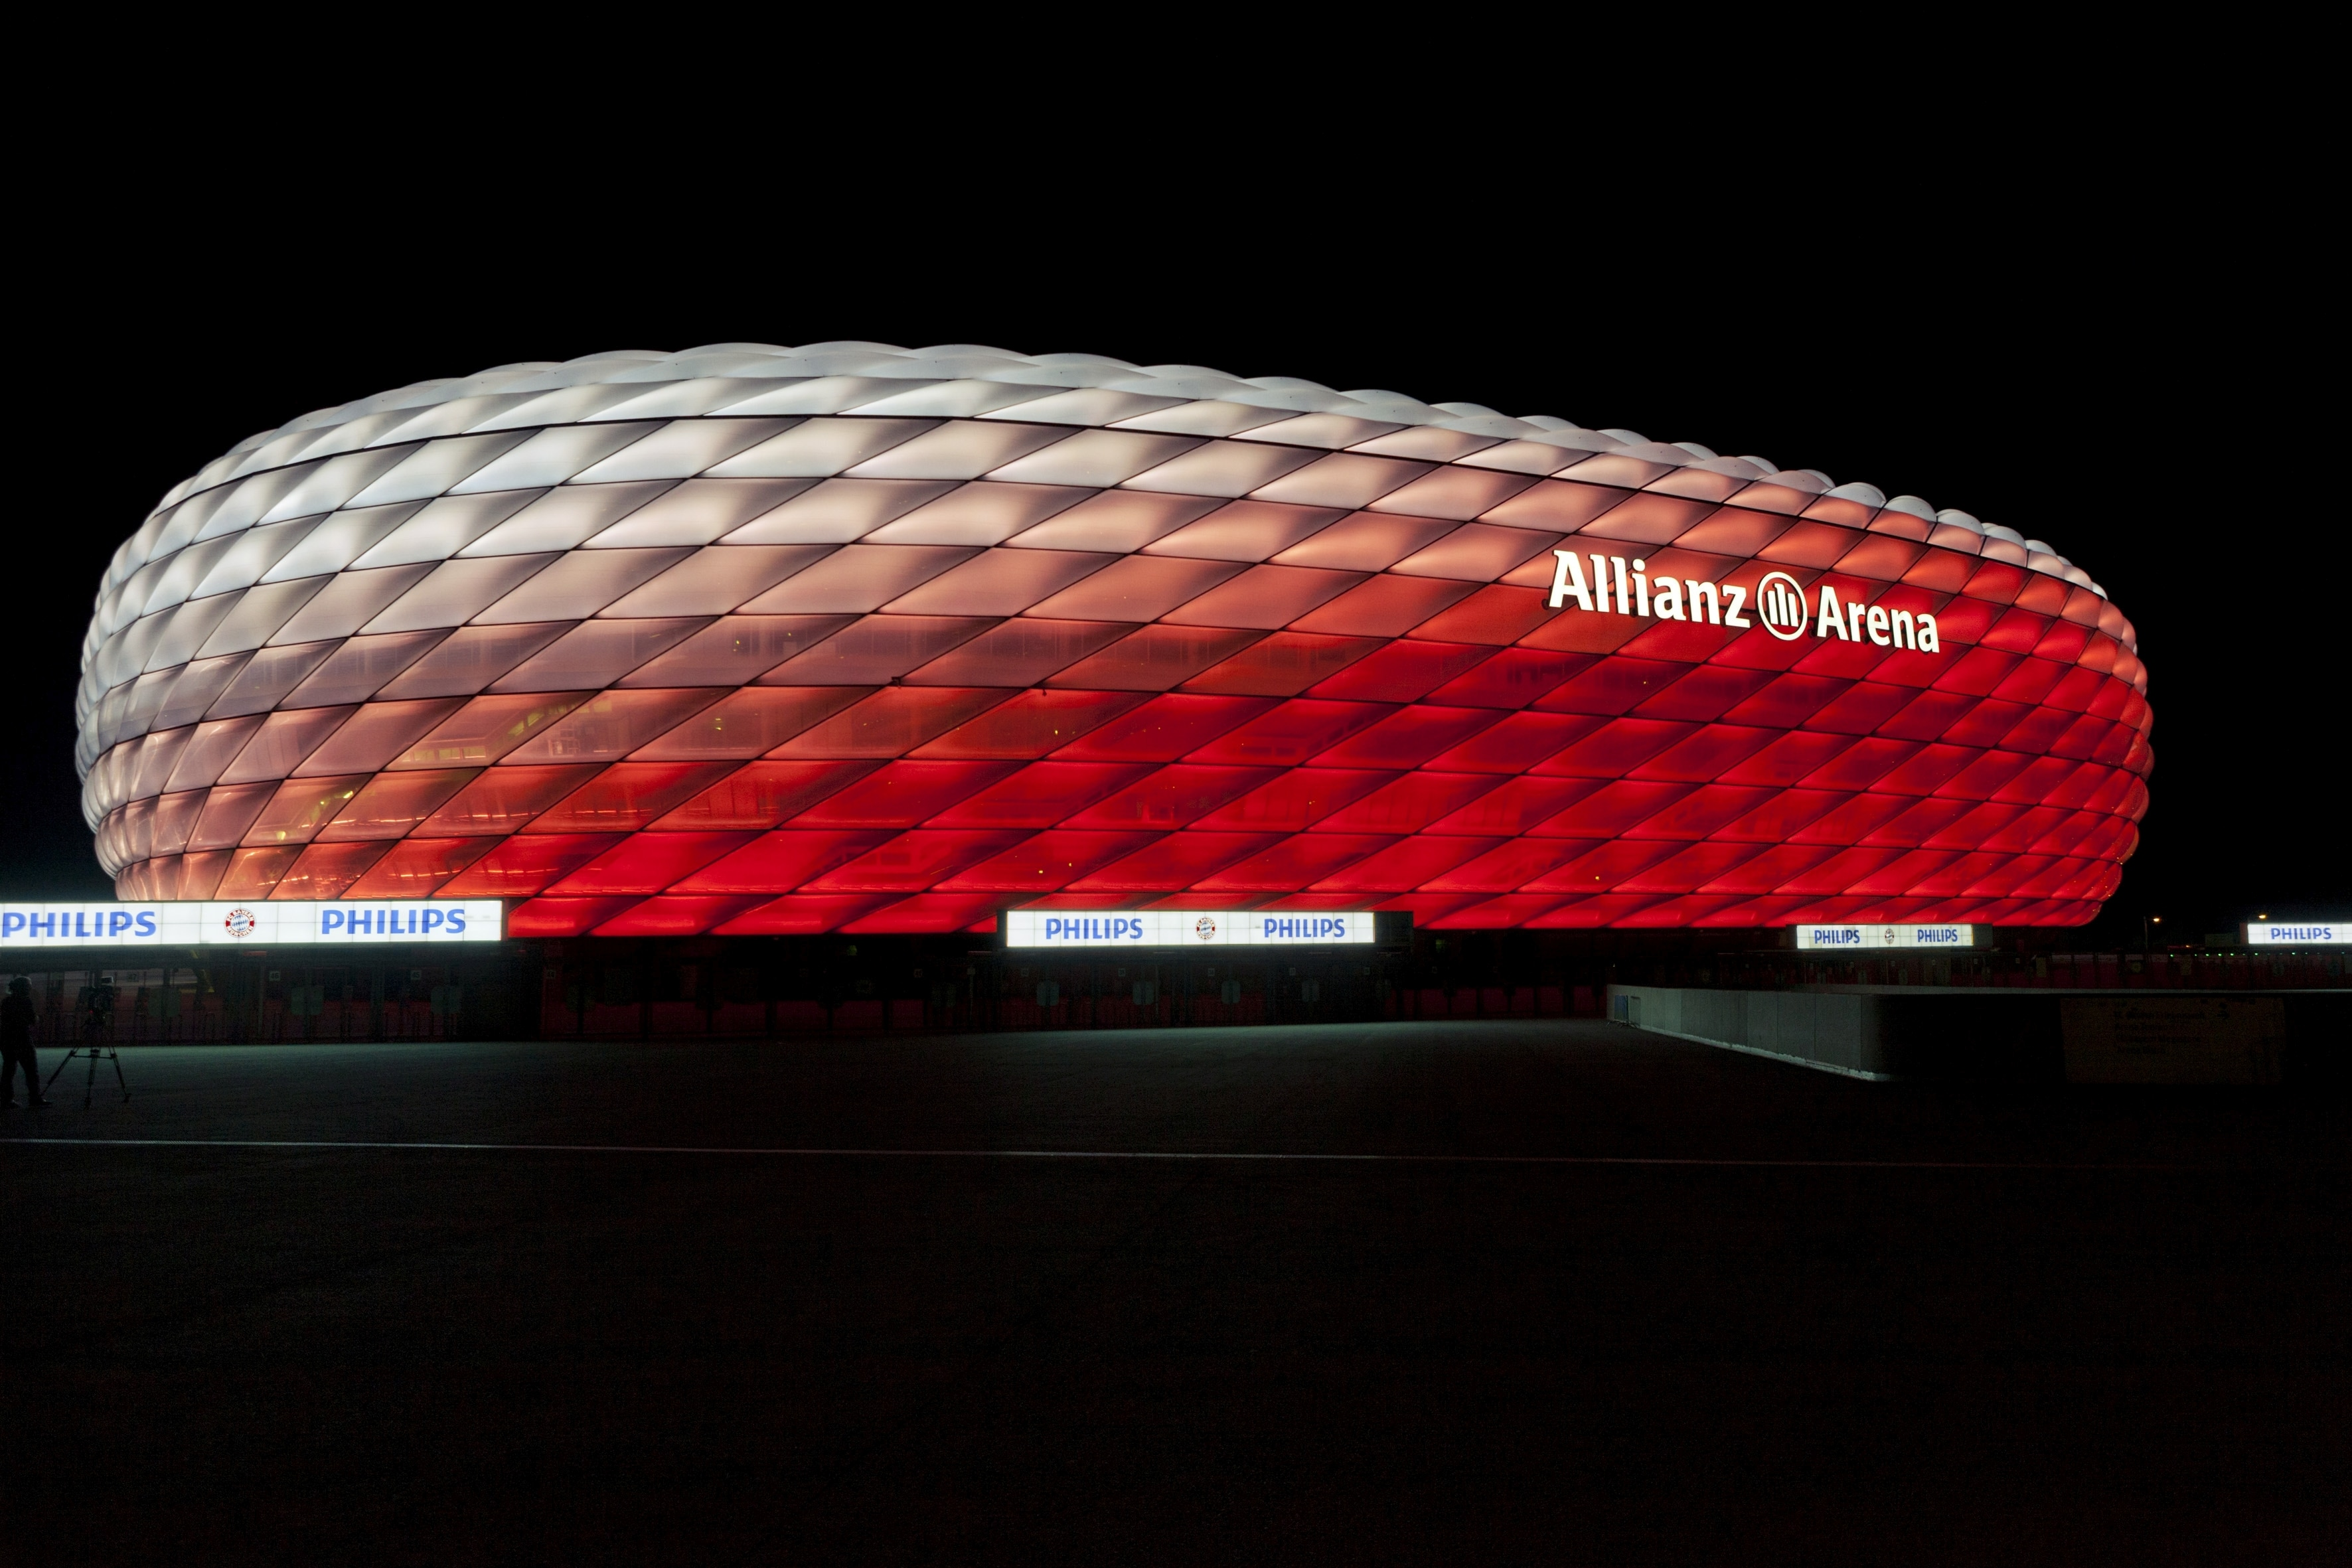 N Wallpaper 3d Hd Connected Philips Led Lighting For The Allianz Arena Fc